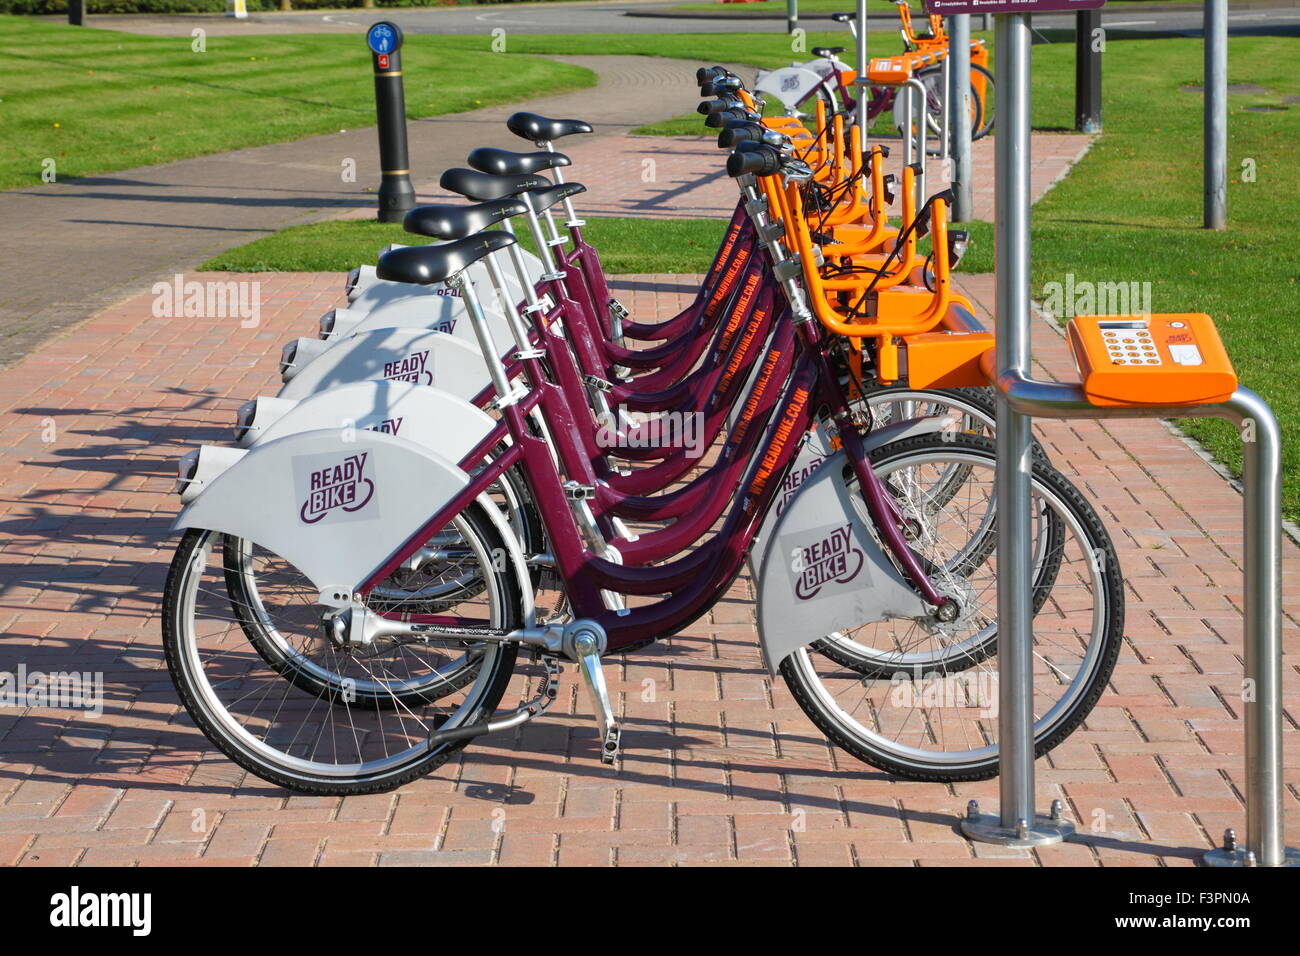 A row of ECO friendly Bikes for hire parked awaiting the commuters arrival to help keep things green and cars off - Stock Image